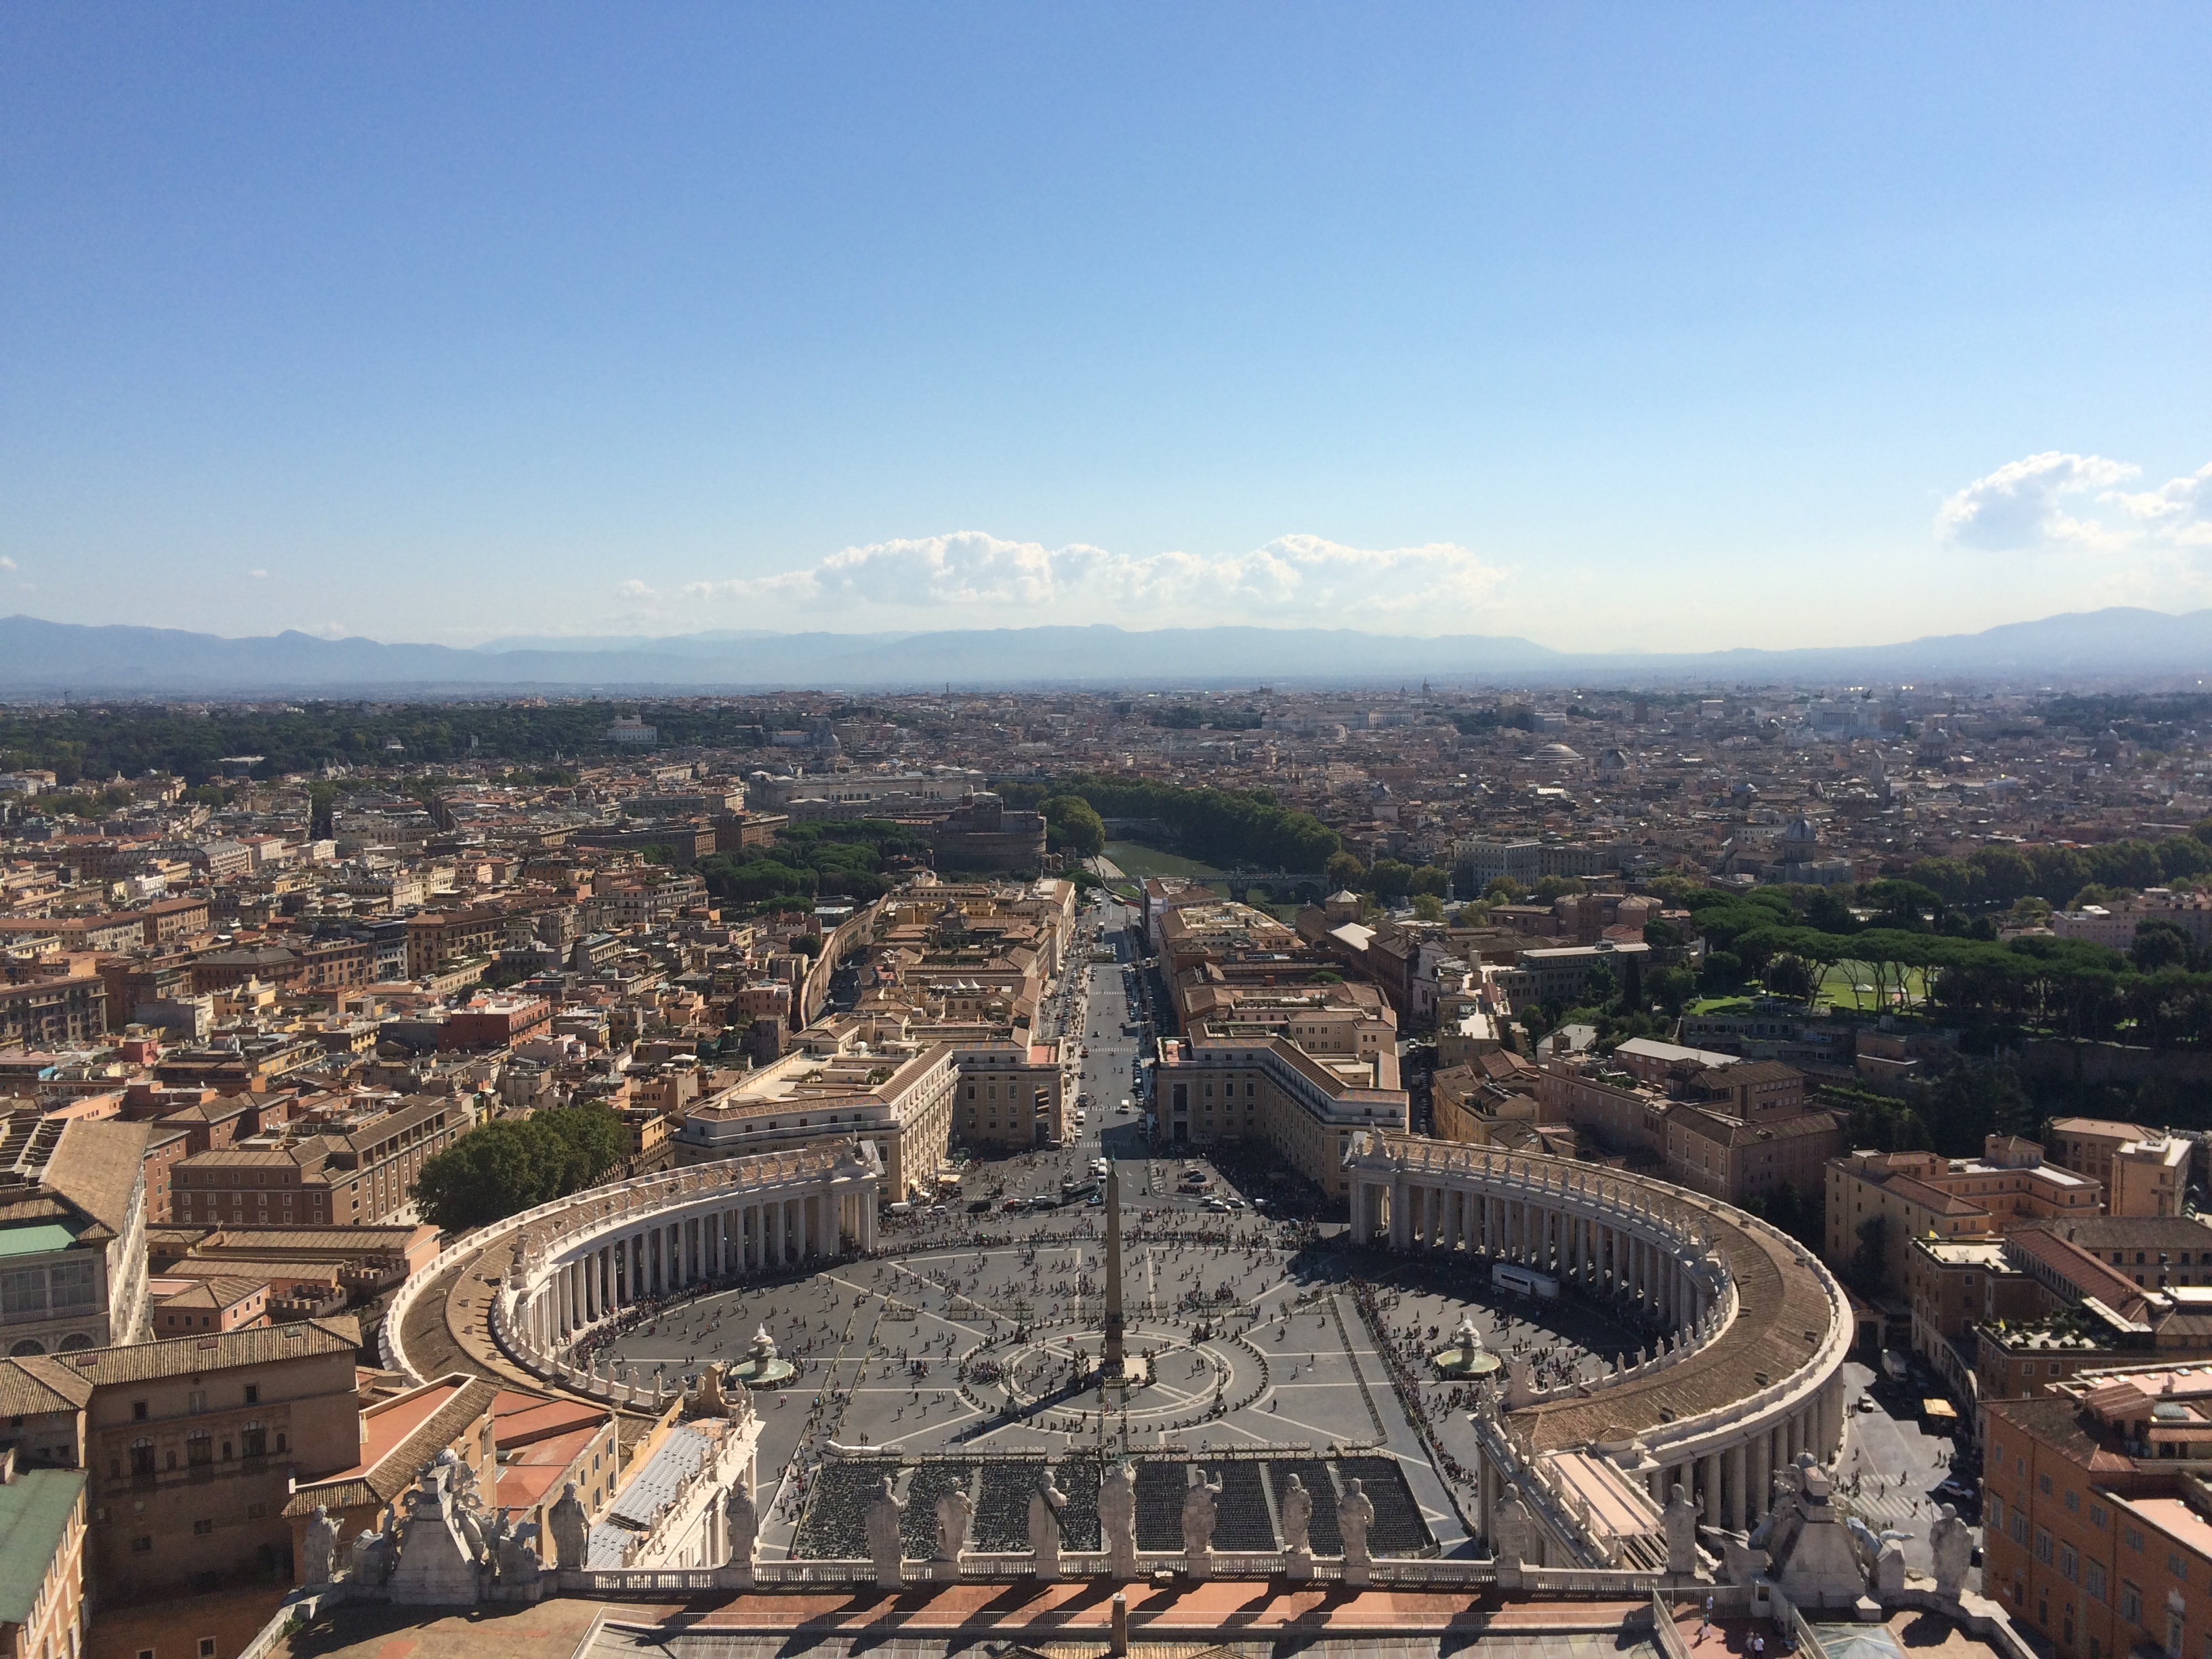 More than 500 steps for this view. View of St. Peter's square from the Basilica Dome